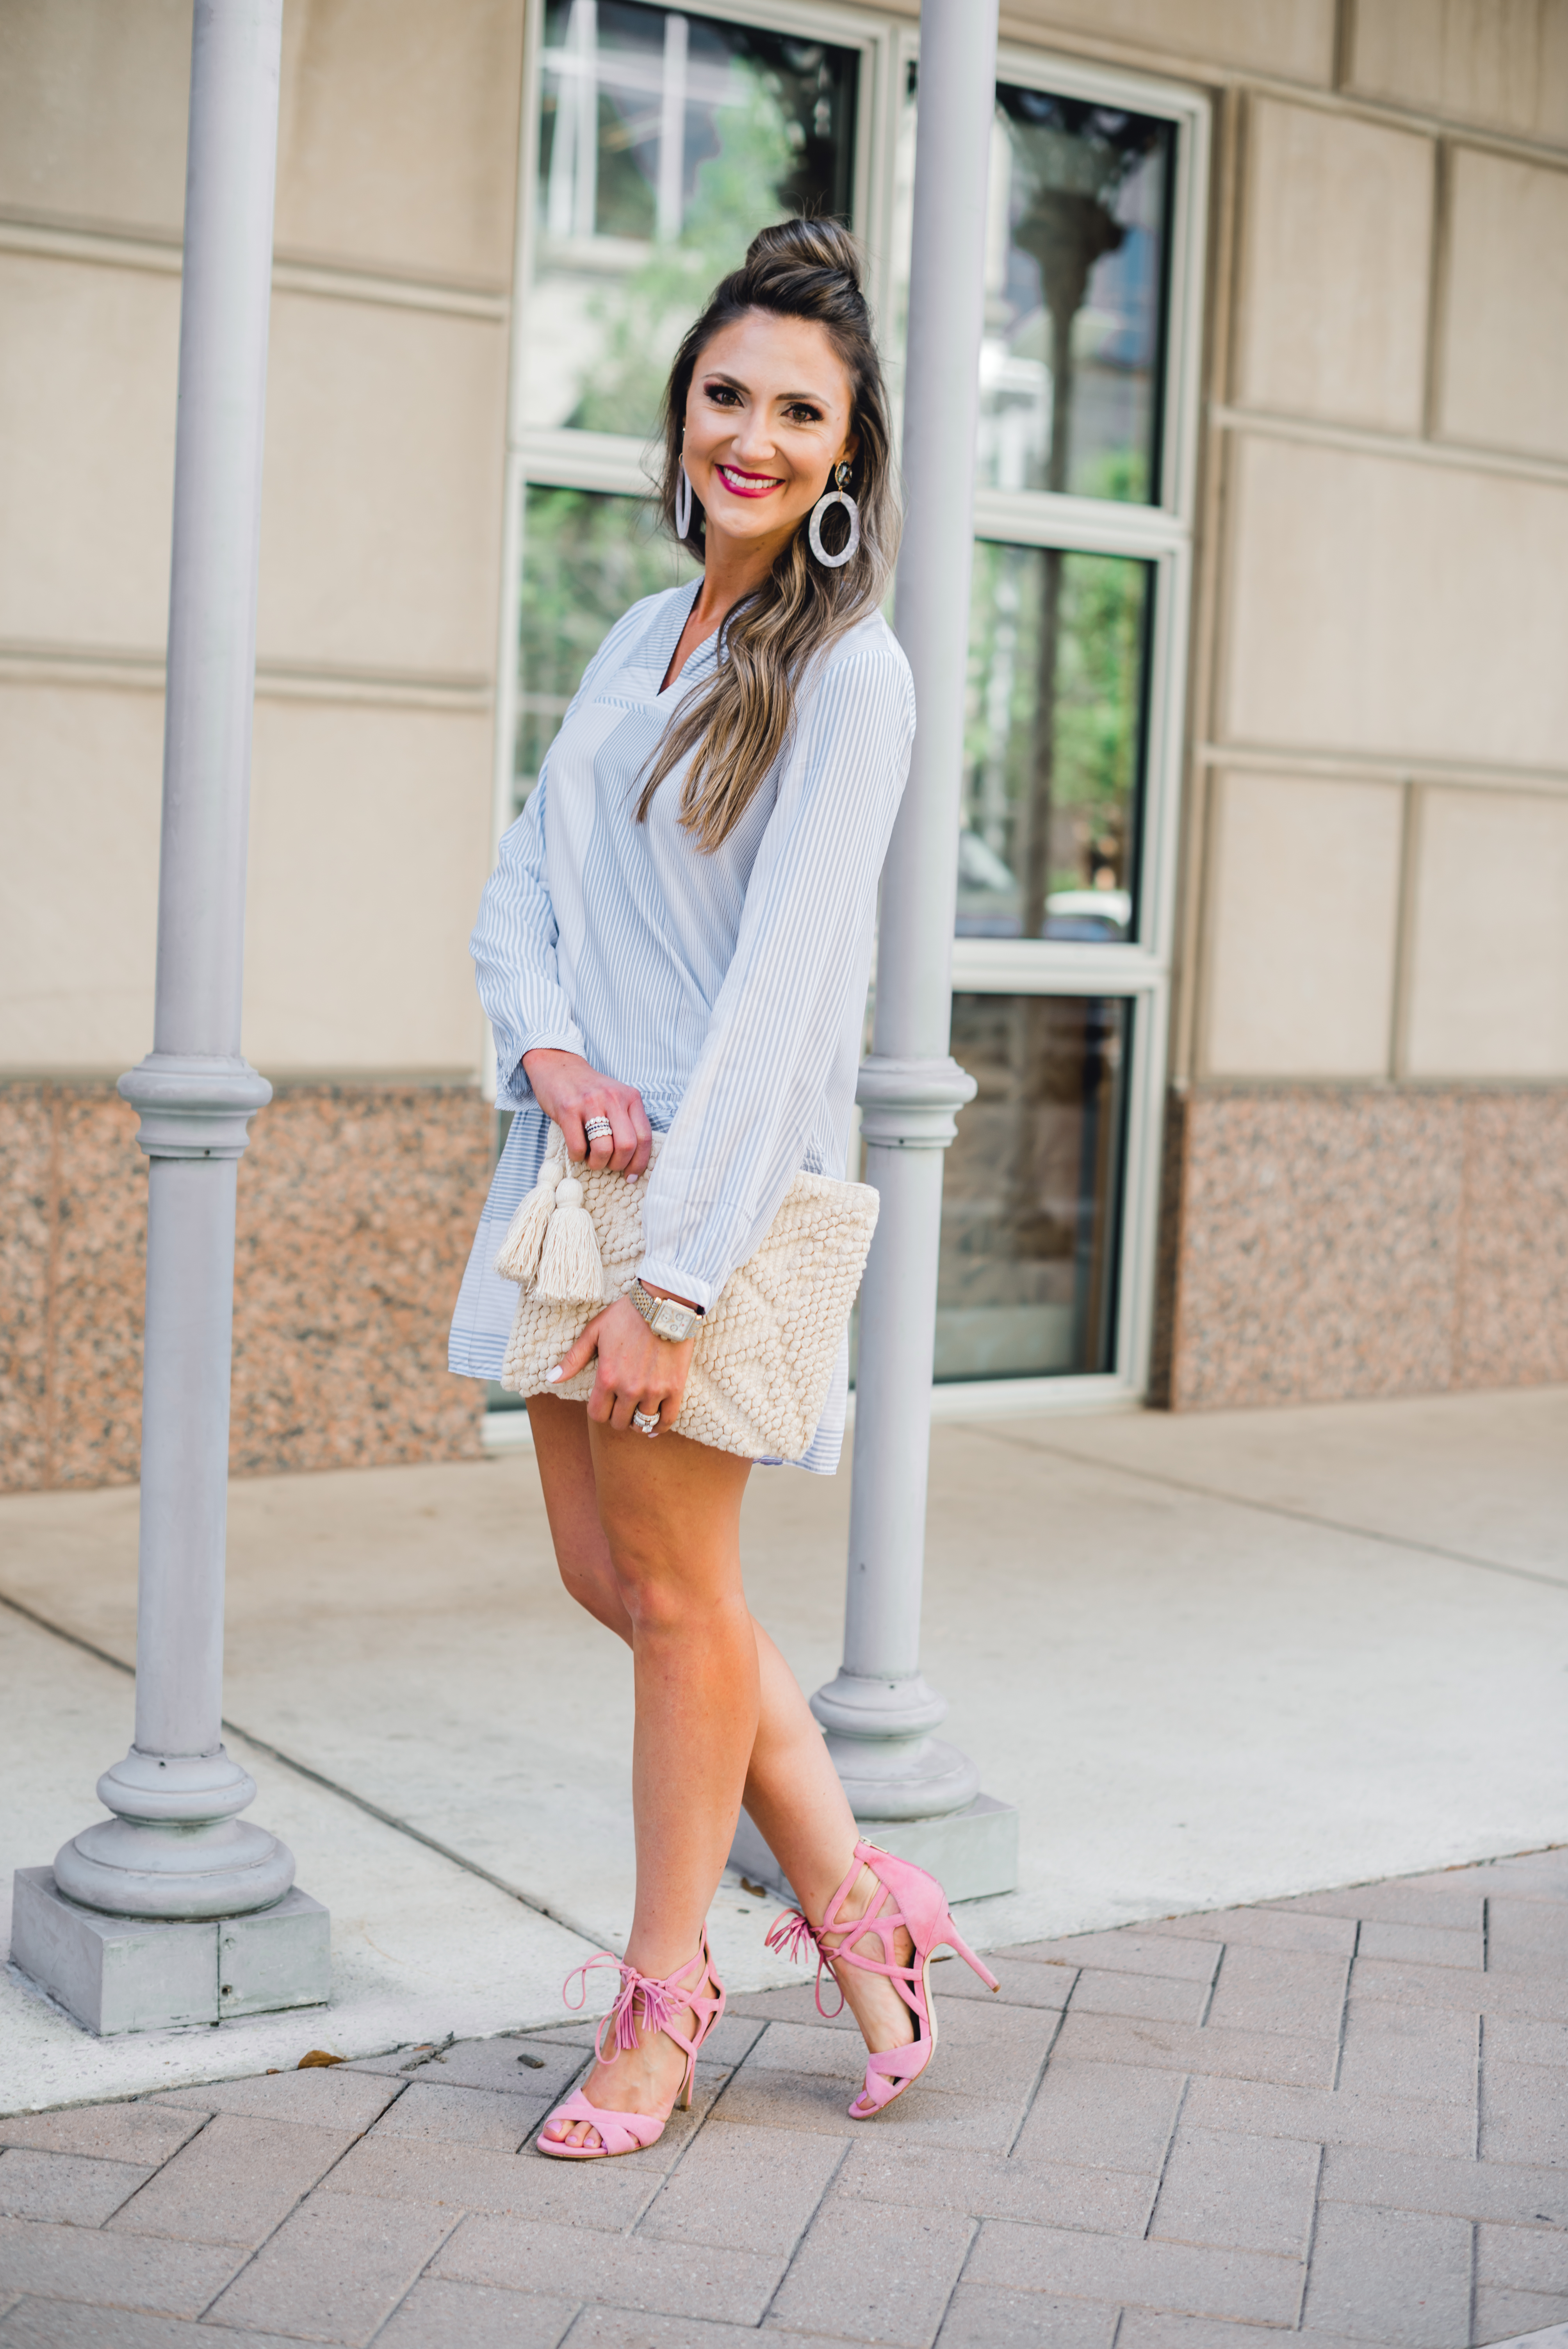 LOFT DRESS / how to wear one dress two ways - LOFT Dress styled two ways by popular Texas fashion blogger, Style Your Senses